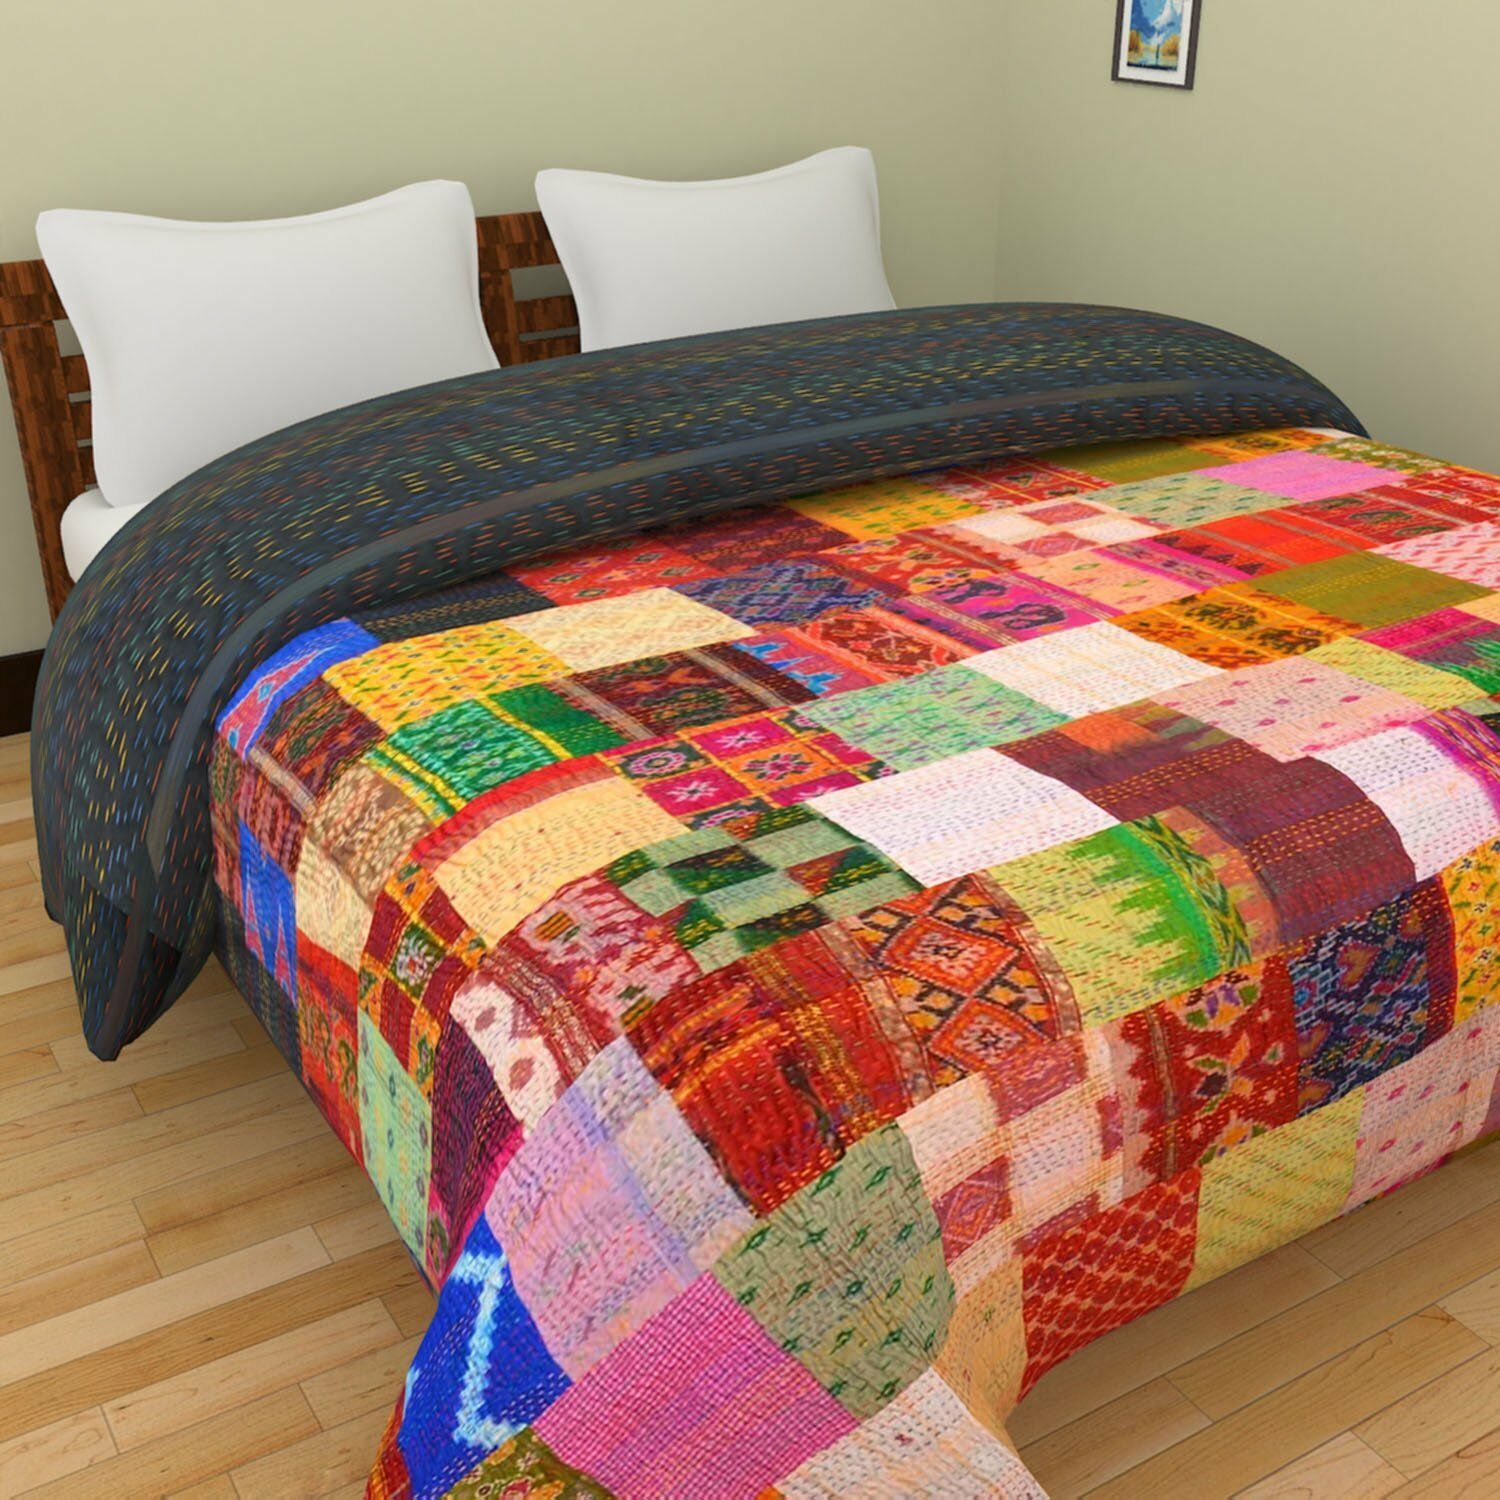 Indian Blanket Ikat(Patola)Silk Handmade Kantha Quilt,Bed Spread Patch King Size